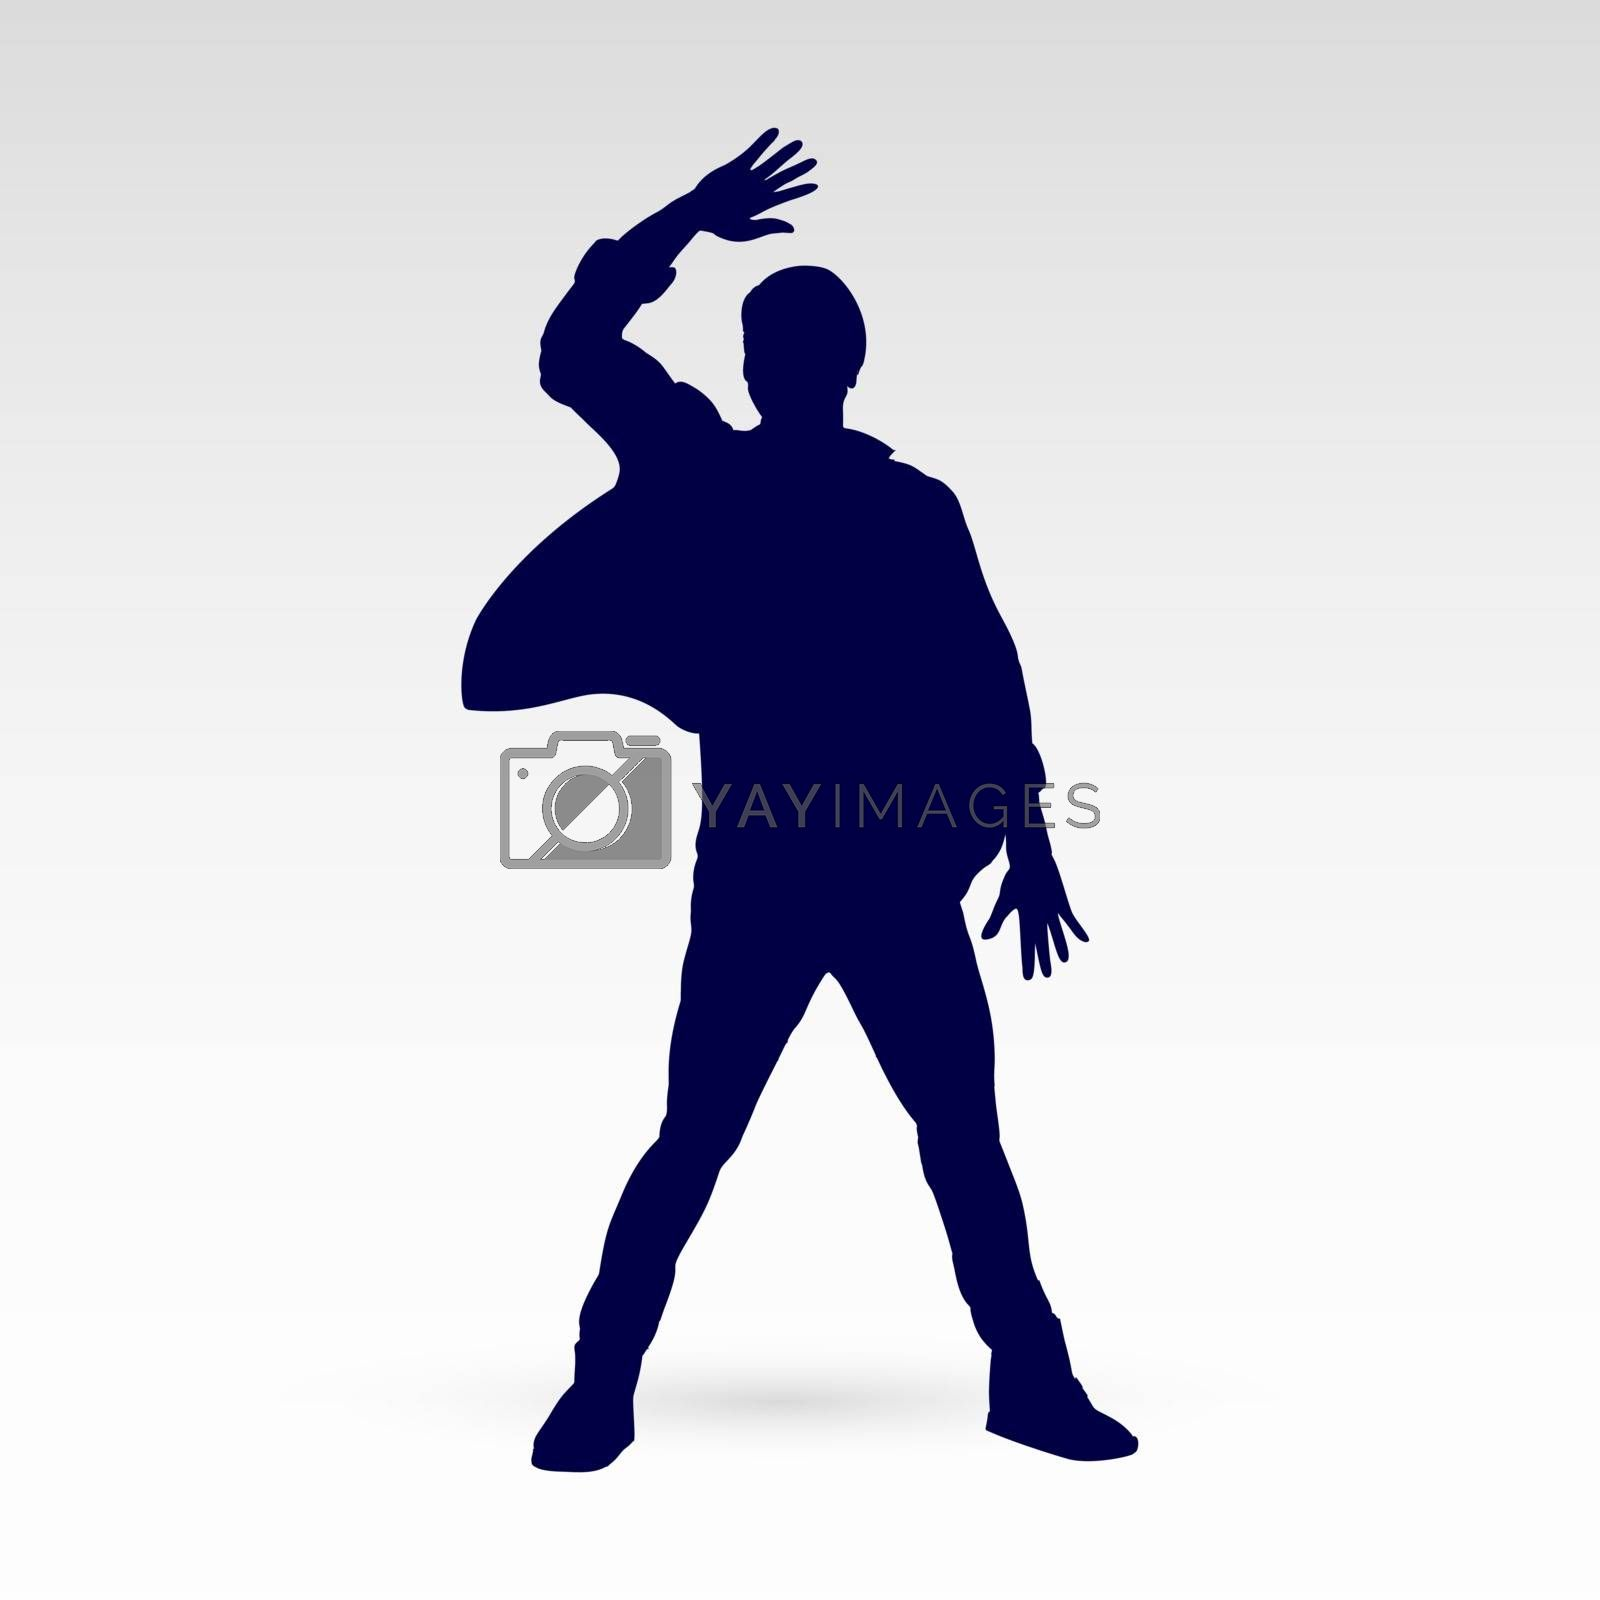 Silhouette of a Modern Dancer Man Poses in Front of the Gray Background